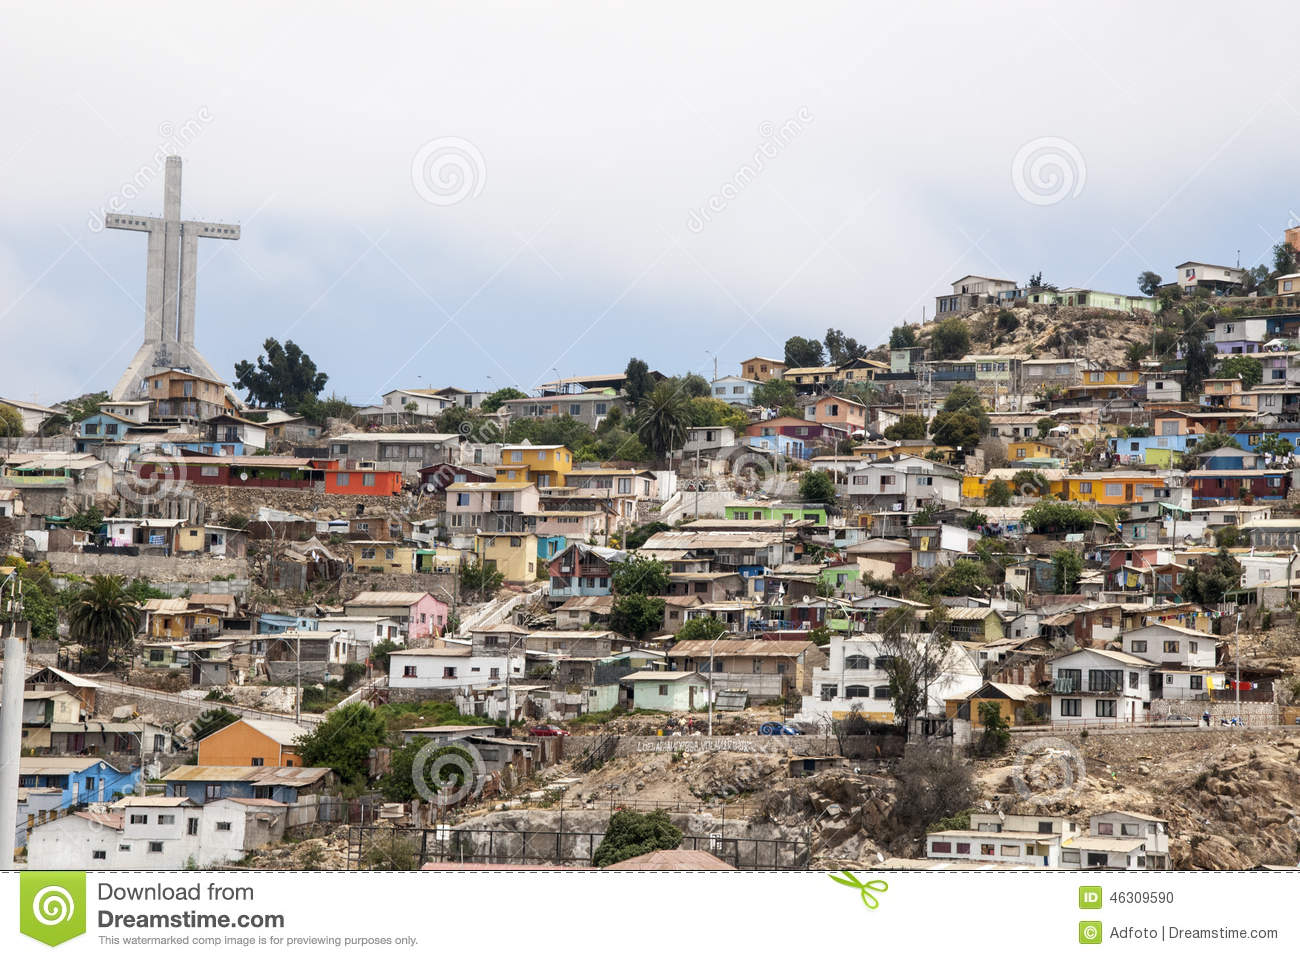 Chile - View of Coquimbo